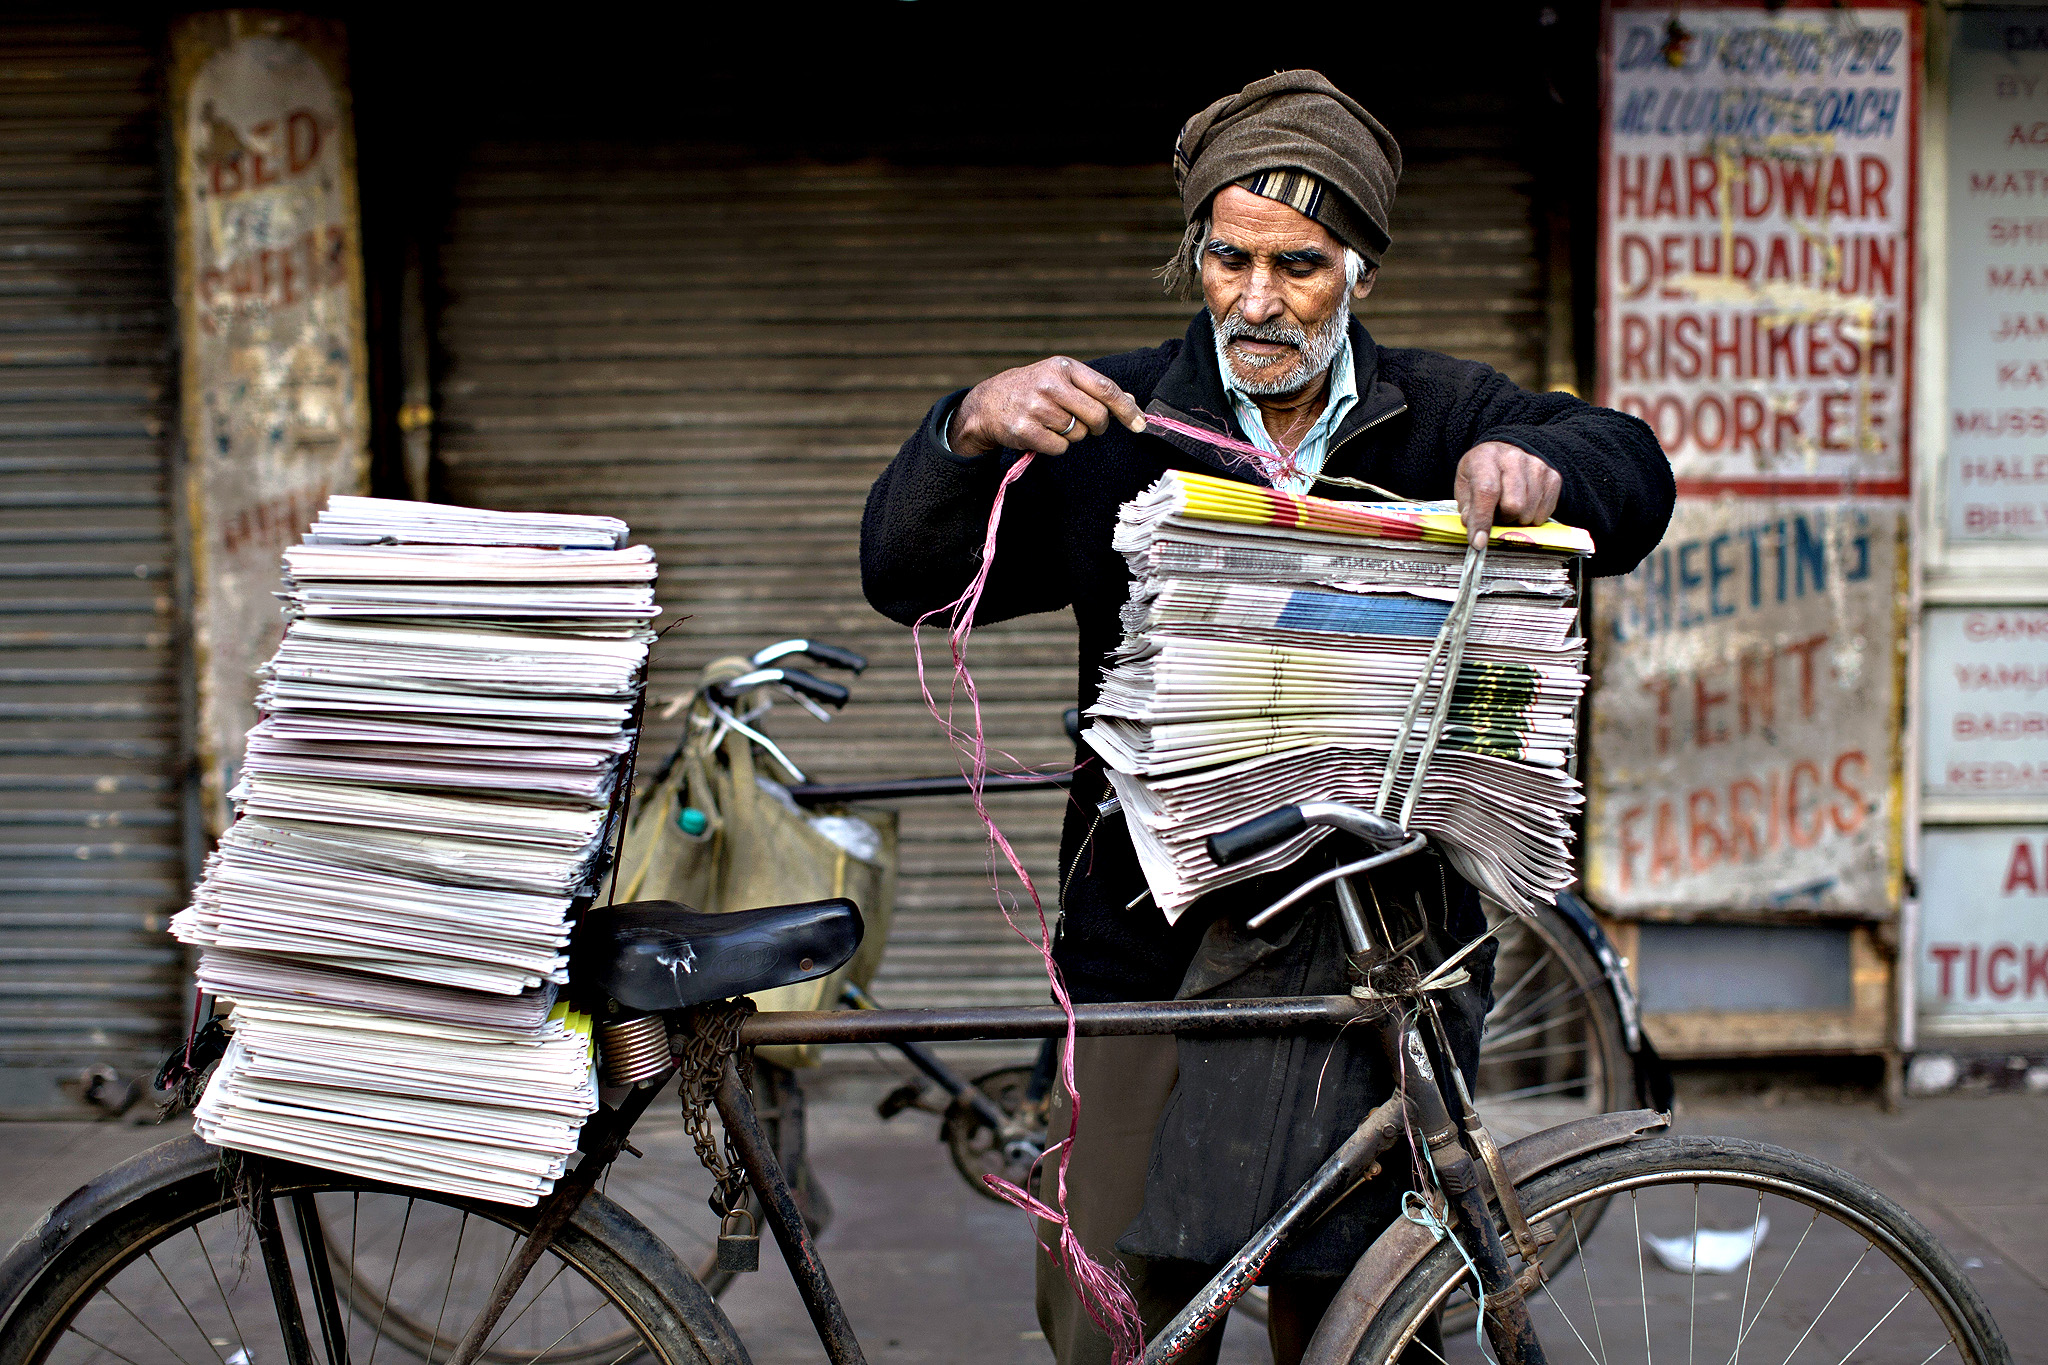 An Indian newspaper vendor ties newspapers on his bicycle early in the morning at the old city area of New Delhi, India, Friday, Feb. 27, 2015. Old Delhi despite of being extremely crowded and dilapidated still serves as the symbolic heart of the city.